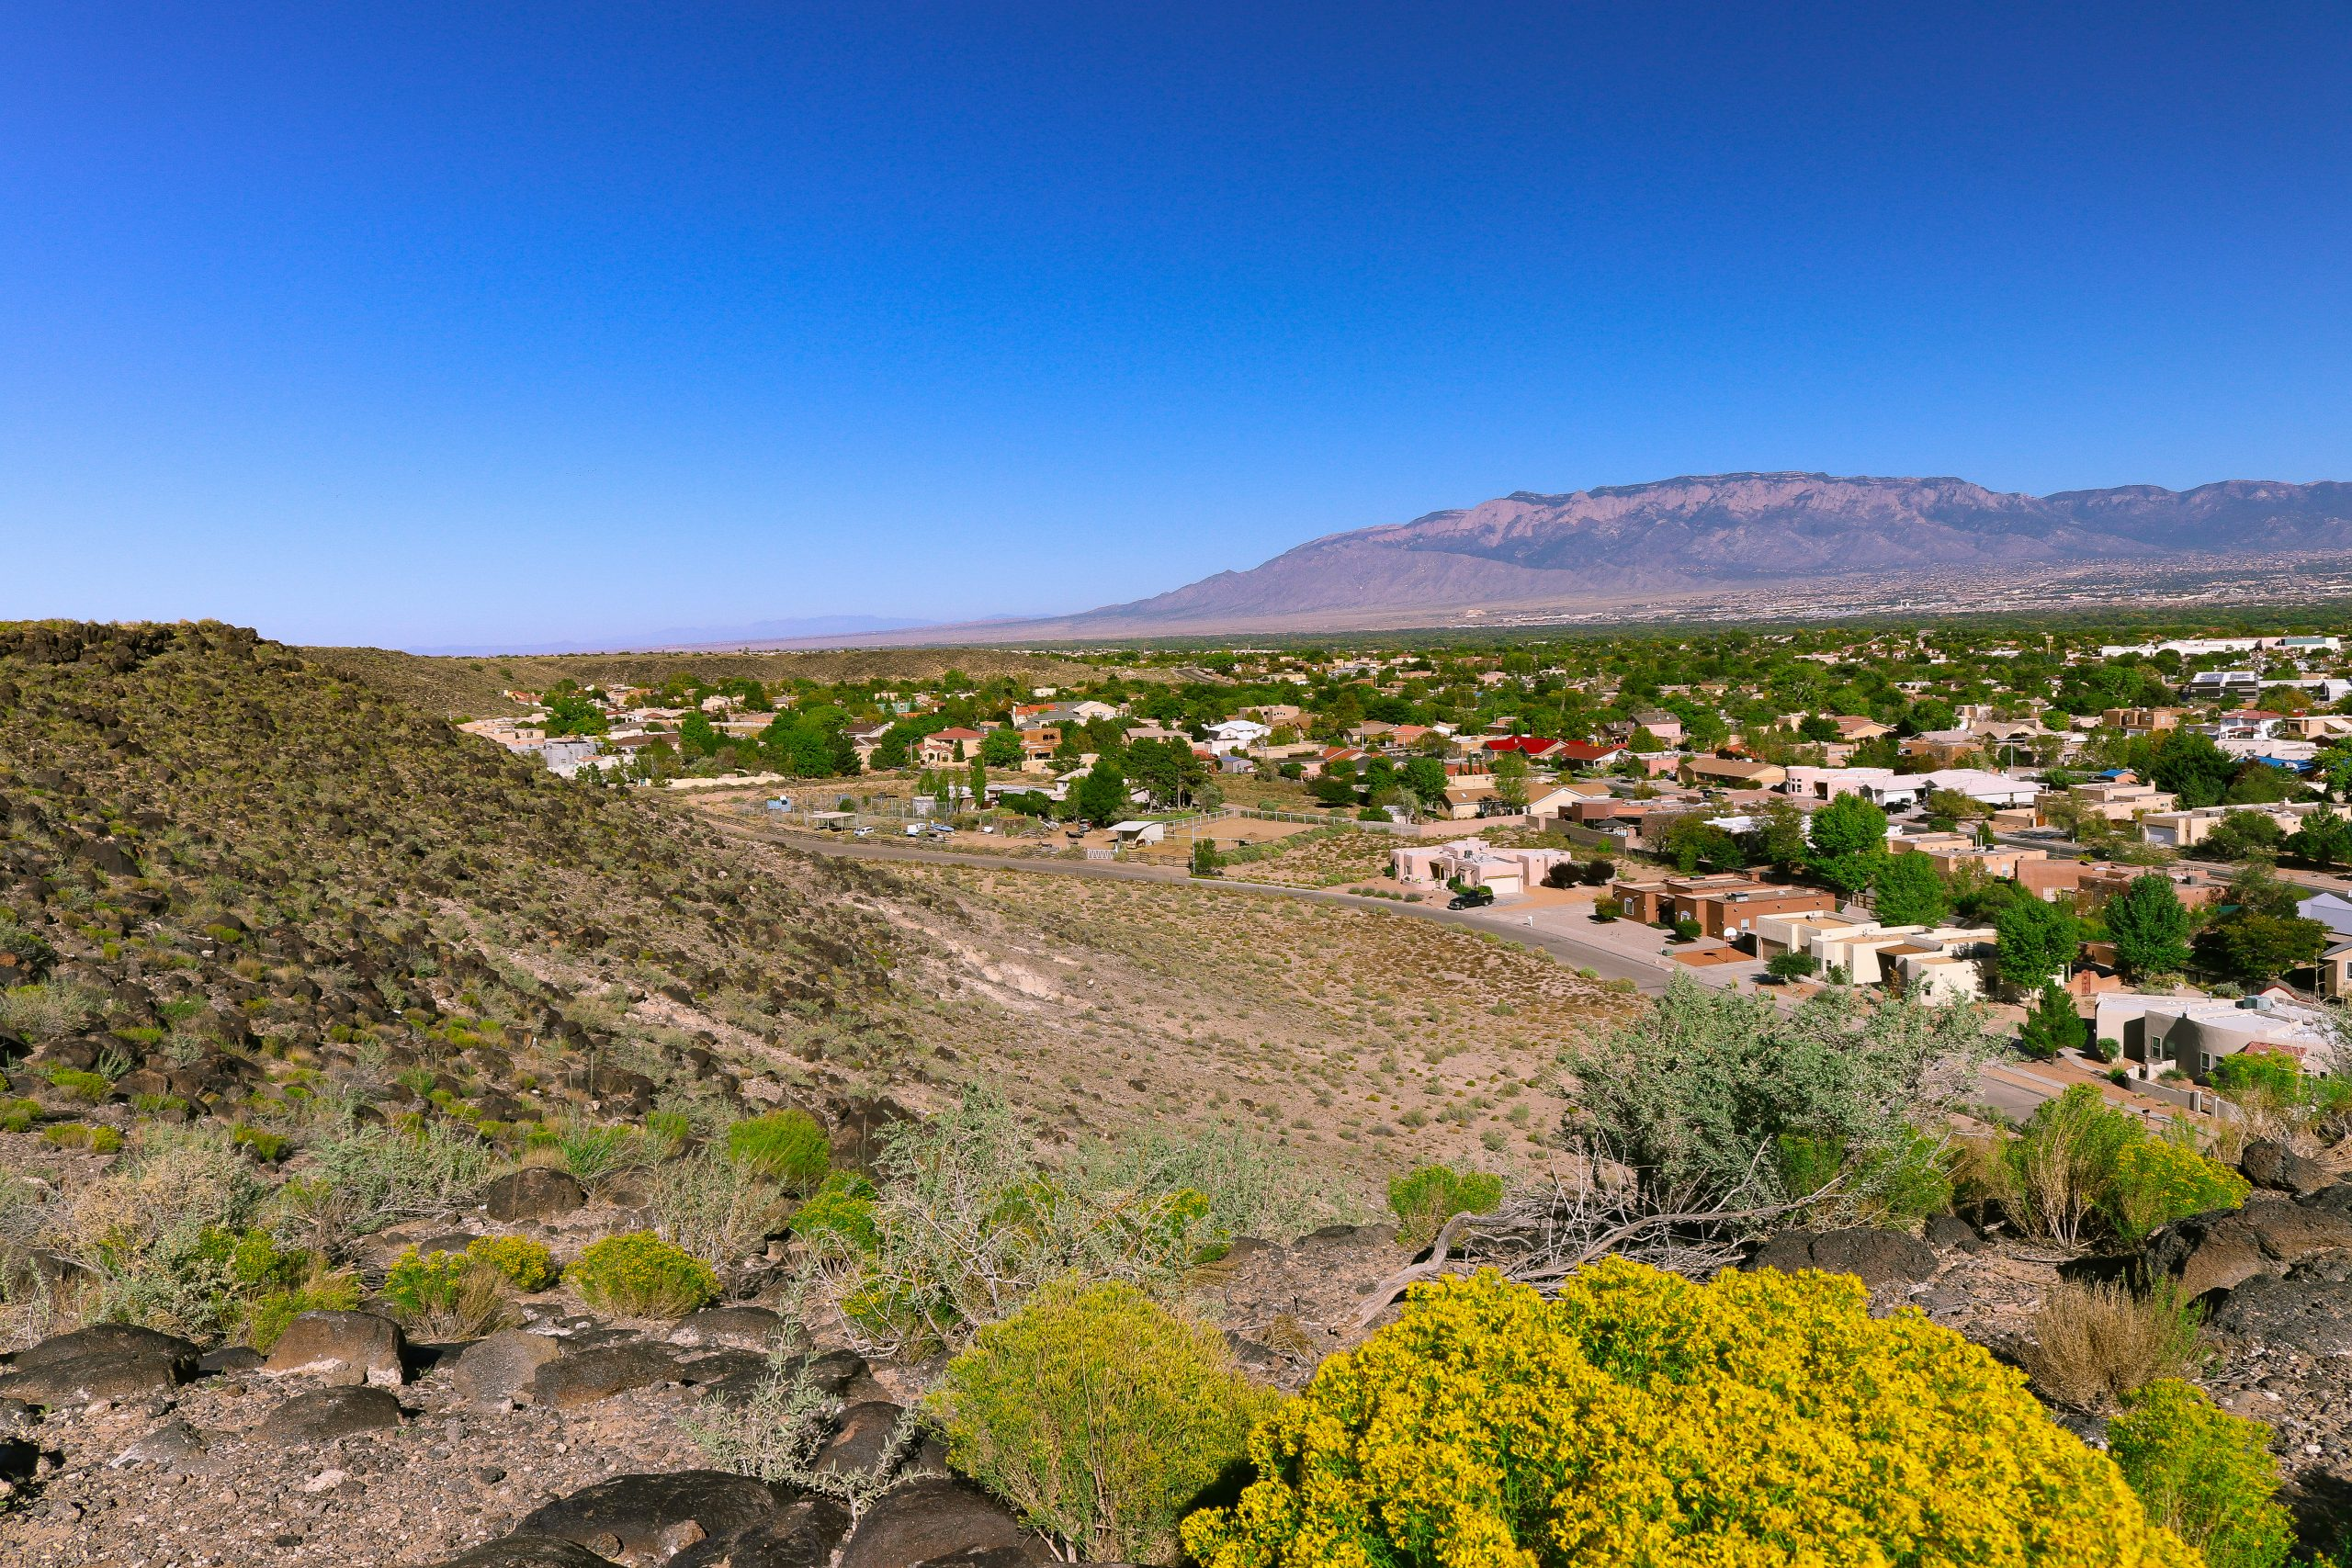 A beautiful view of Sandia Heights in Albuquerque, New Mexico.